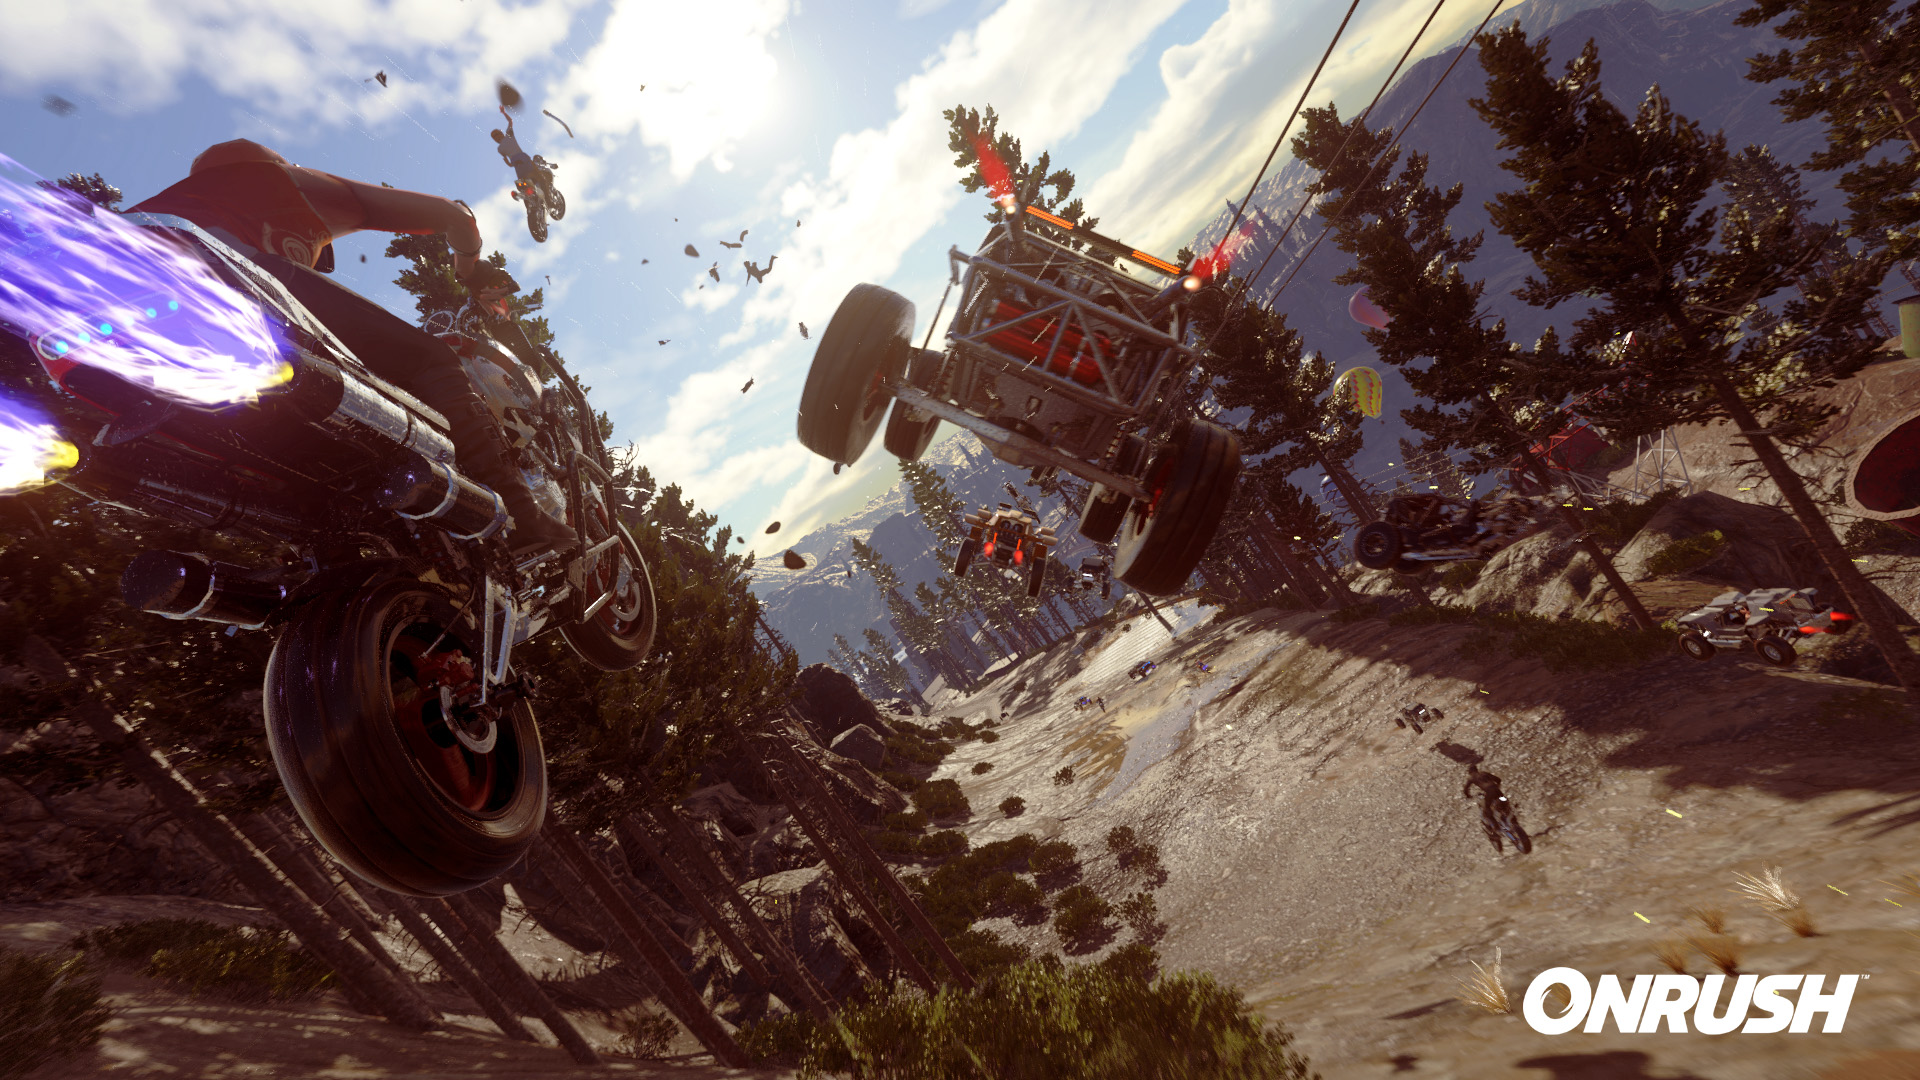 Background Images Read Games Review: Free Download Onrush HD Wallpapers